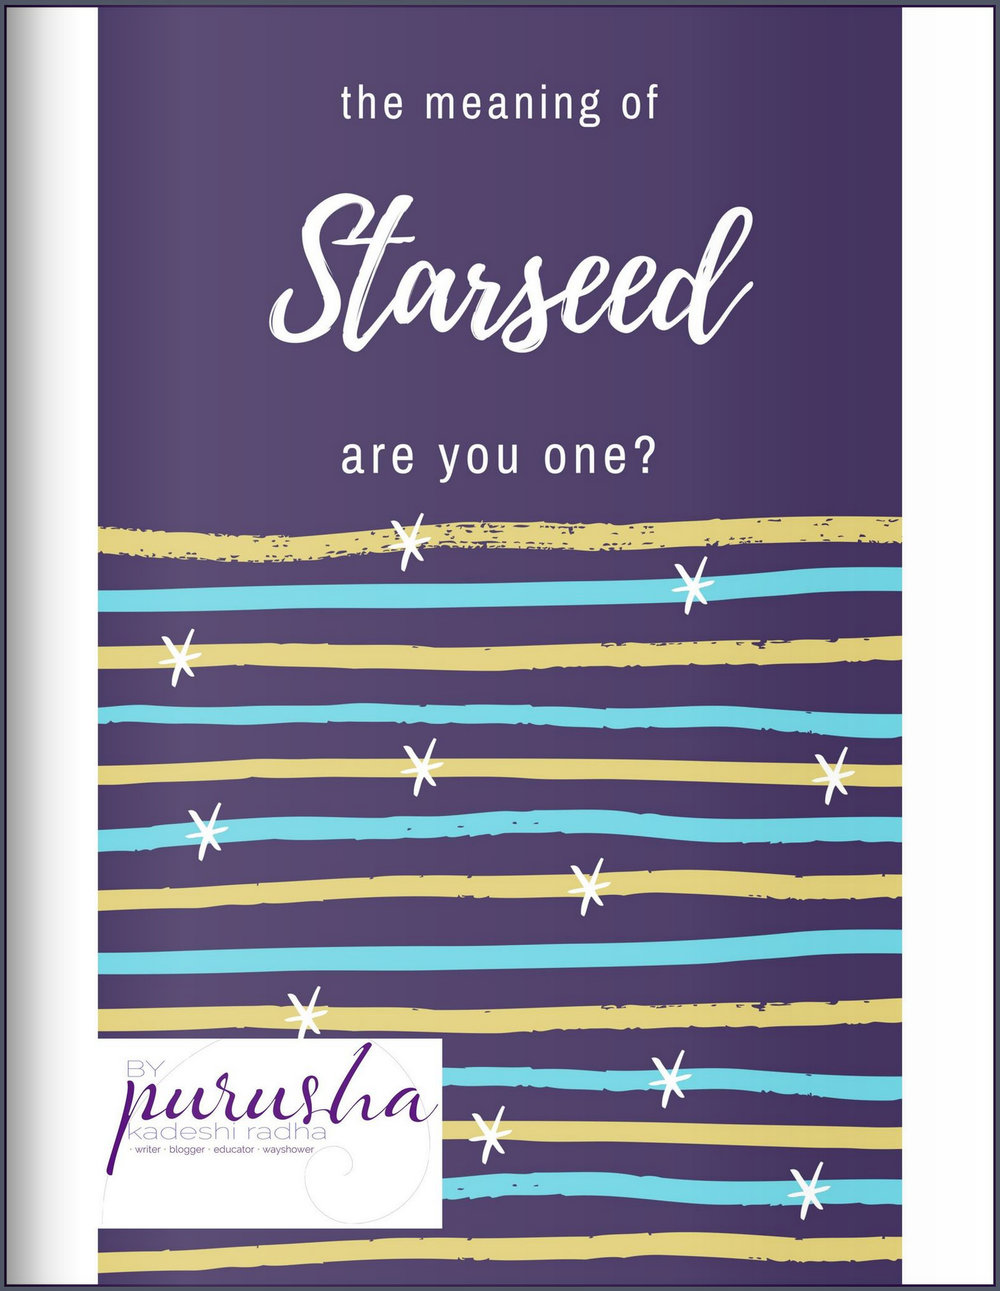 meaning-of-starseed-free-ebook.jpg